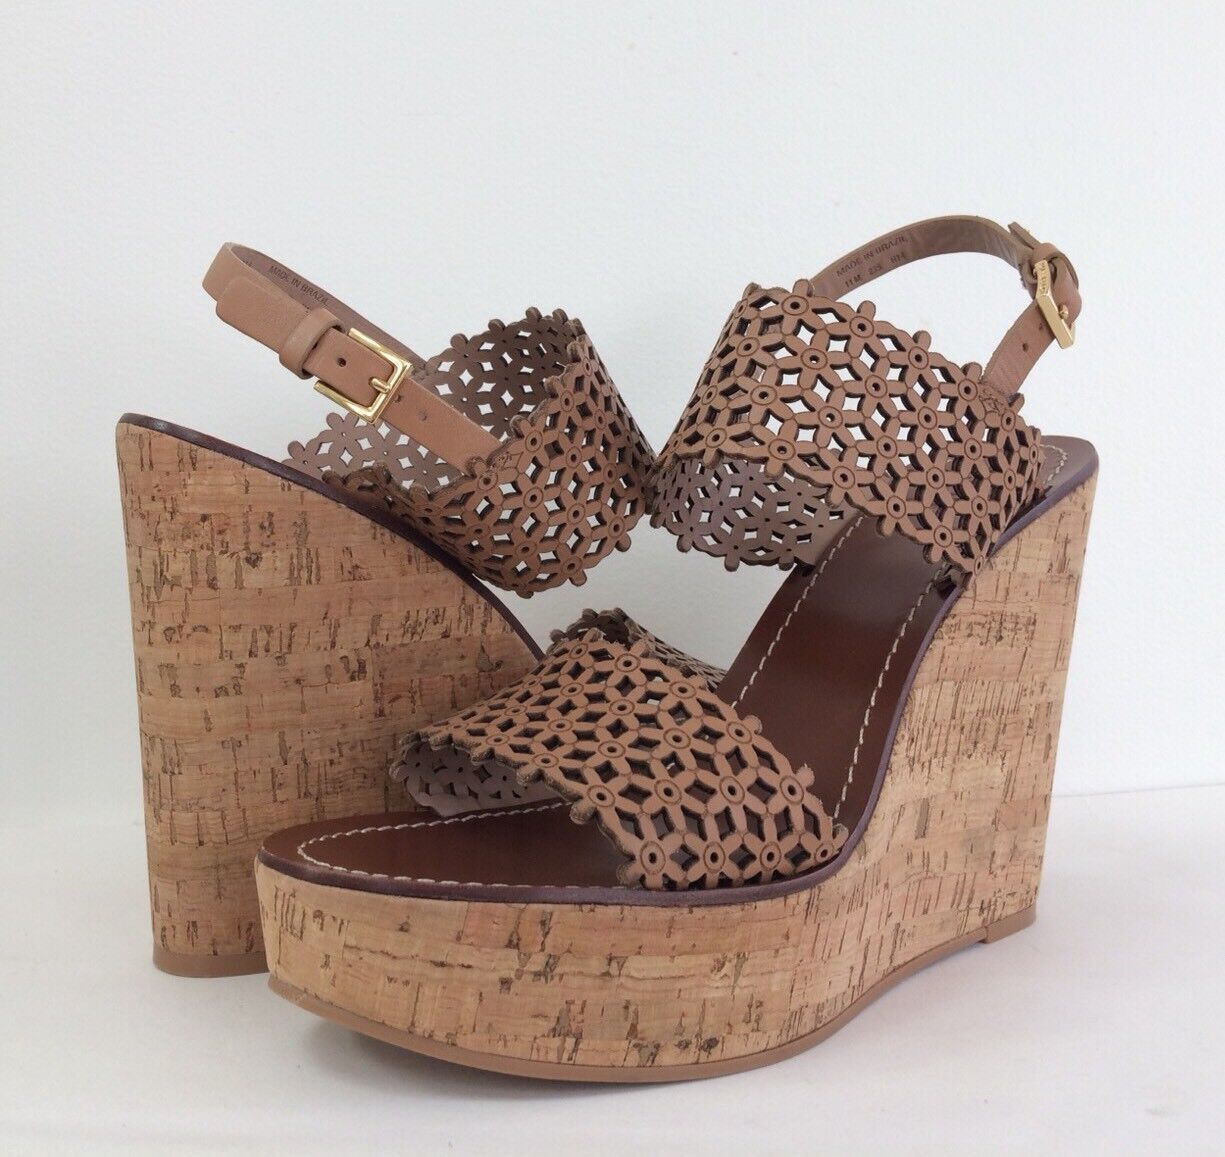 New Tory Burch Burch Burch Sz 11 Daisy Floral Platform Wedge Perforated Leather Sandal Tori 2d2fc0